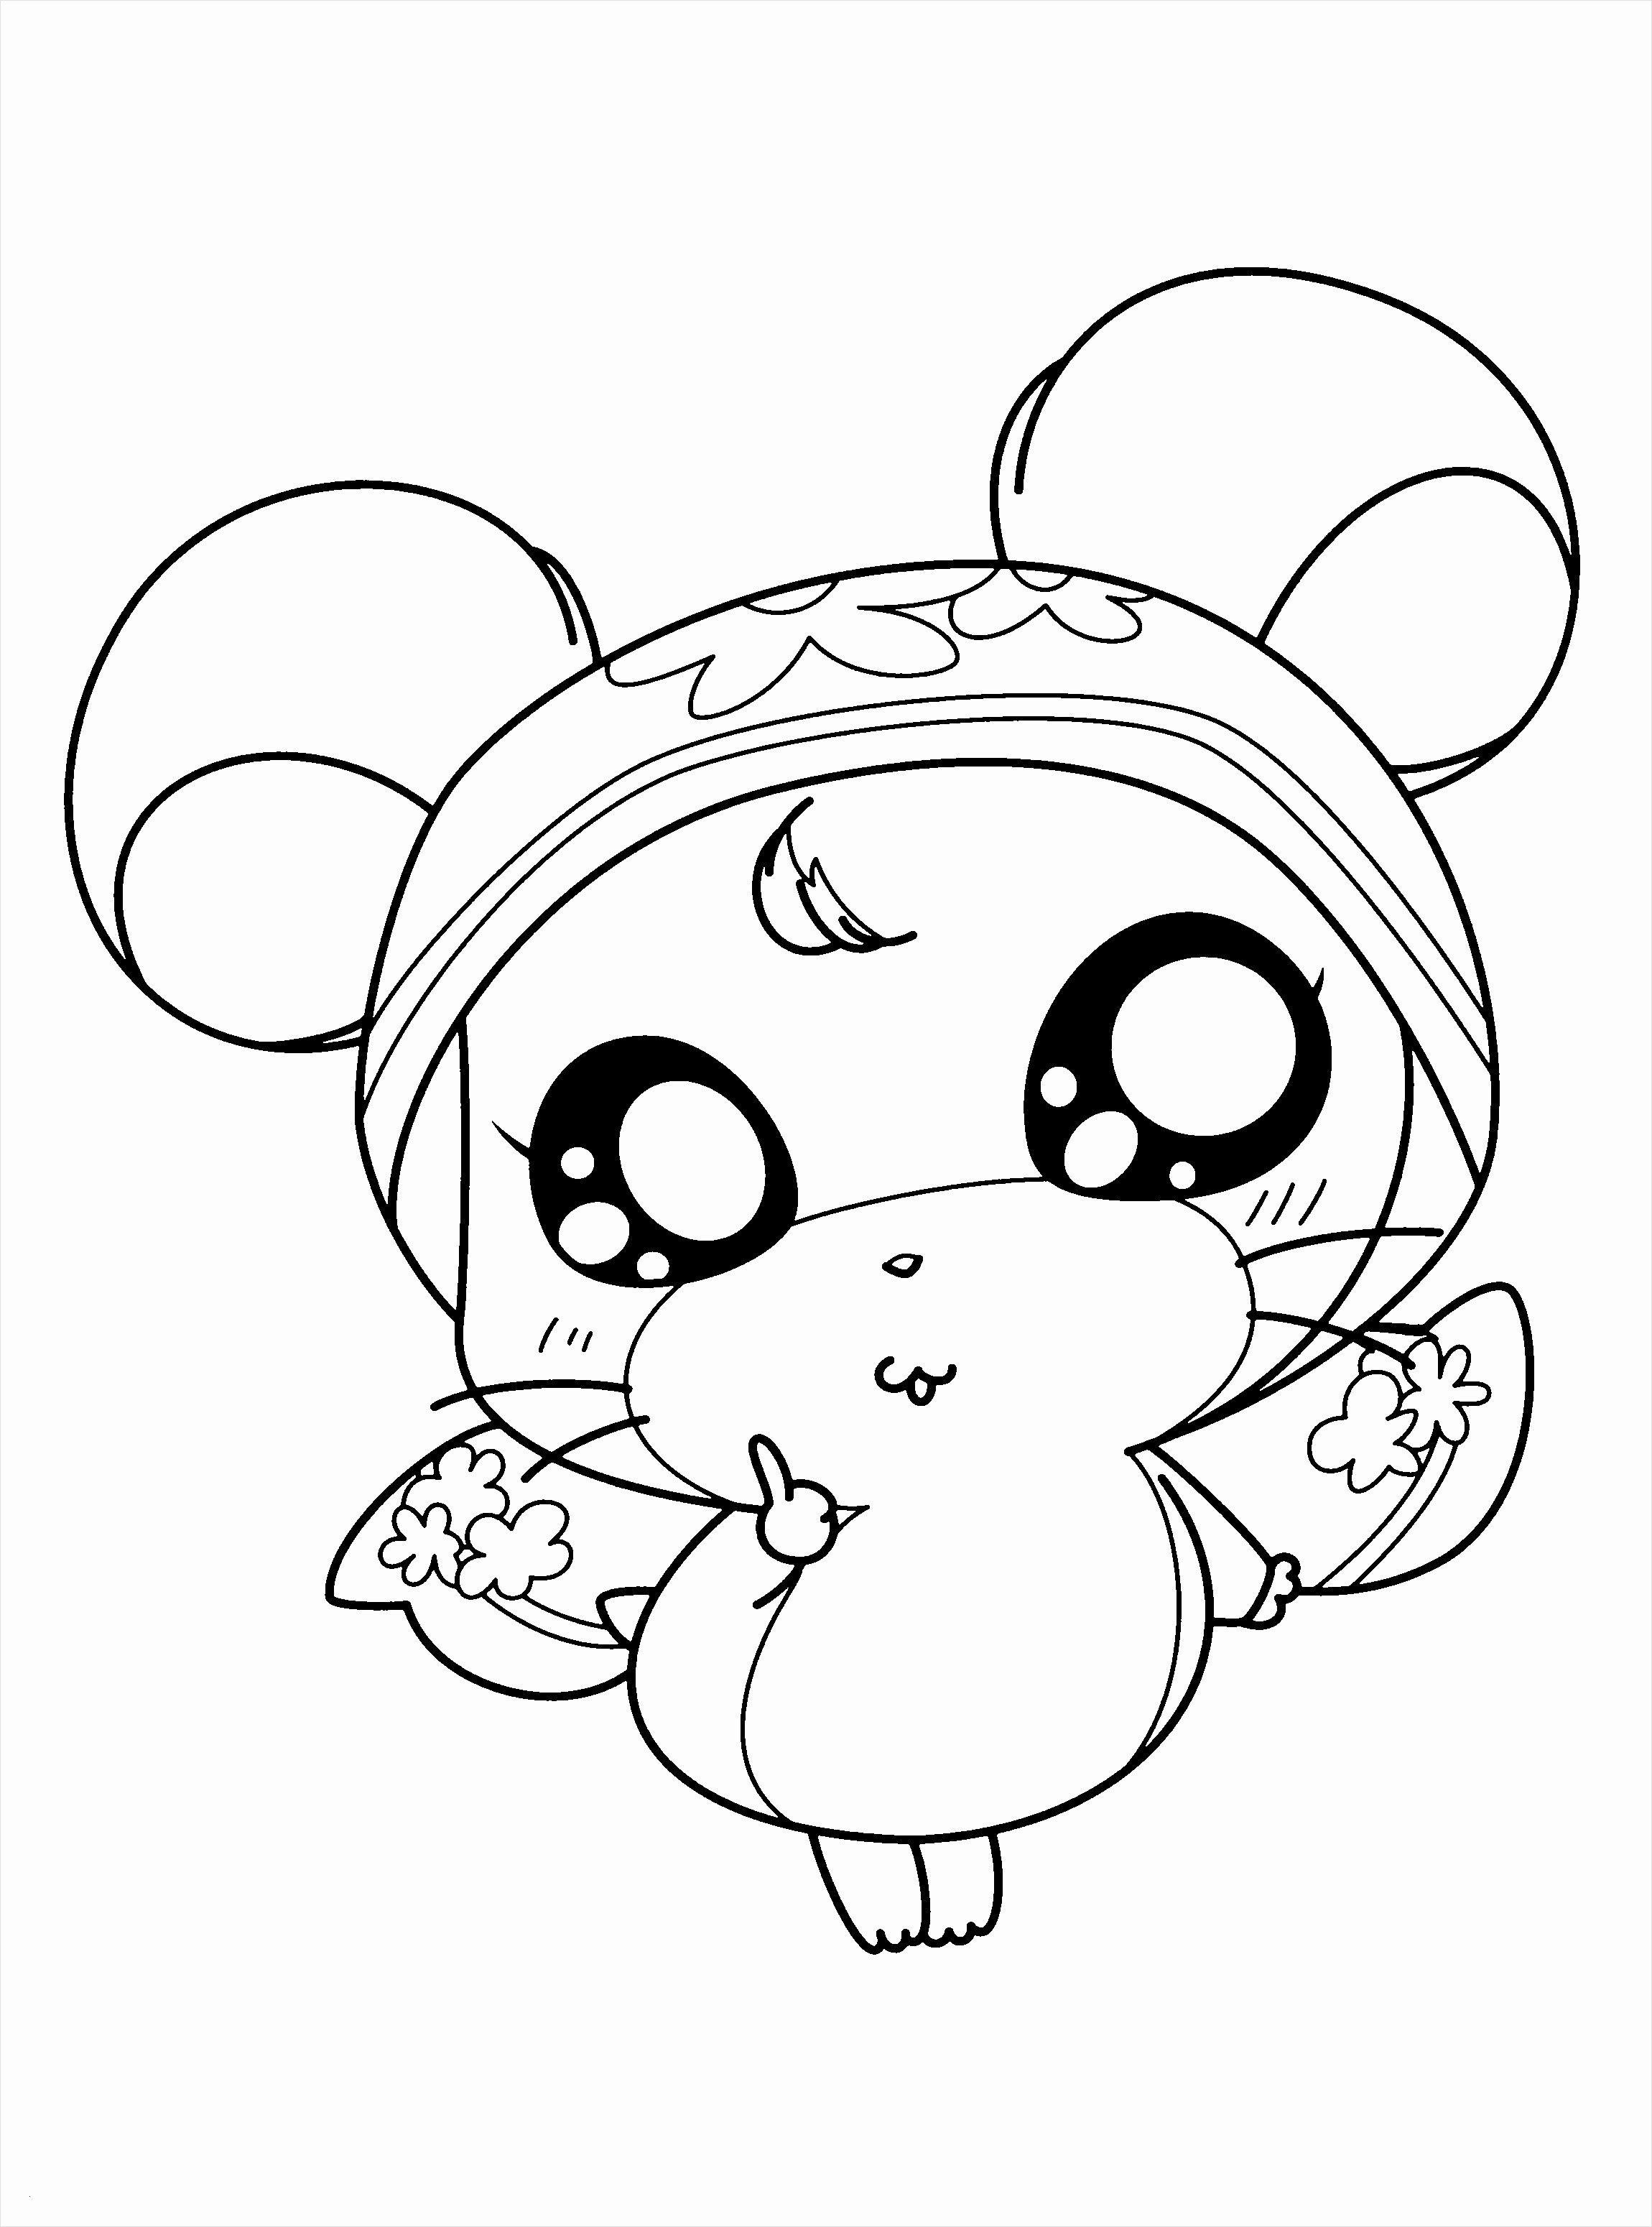 Free printable coloring pages animals from the thousand photos on the web with regards to free printable coloring pages animals we all selects the best